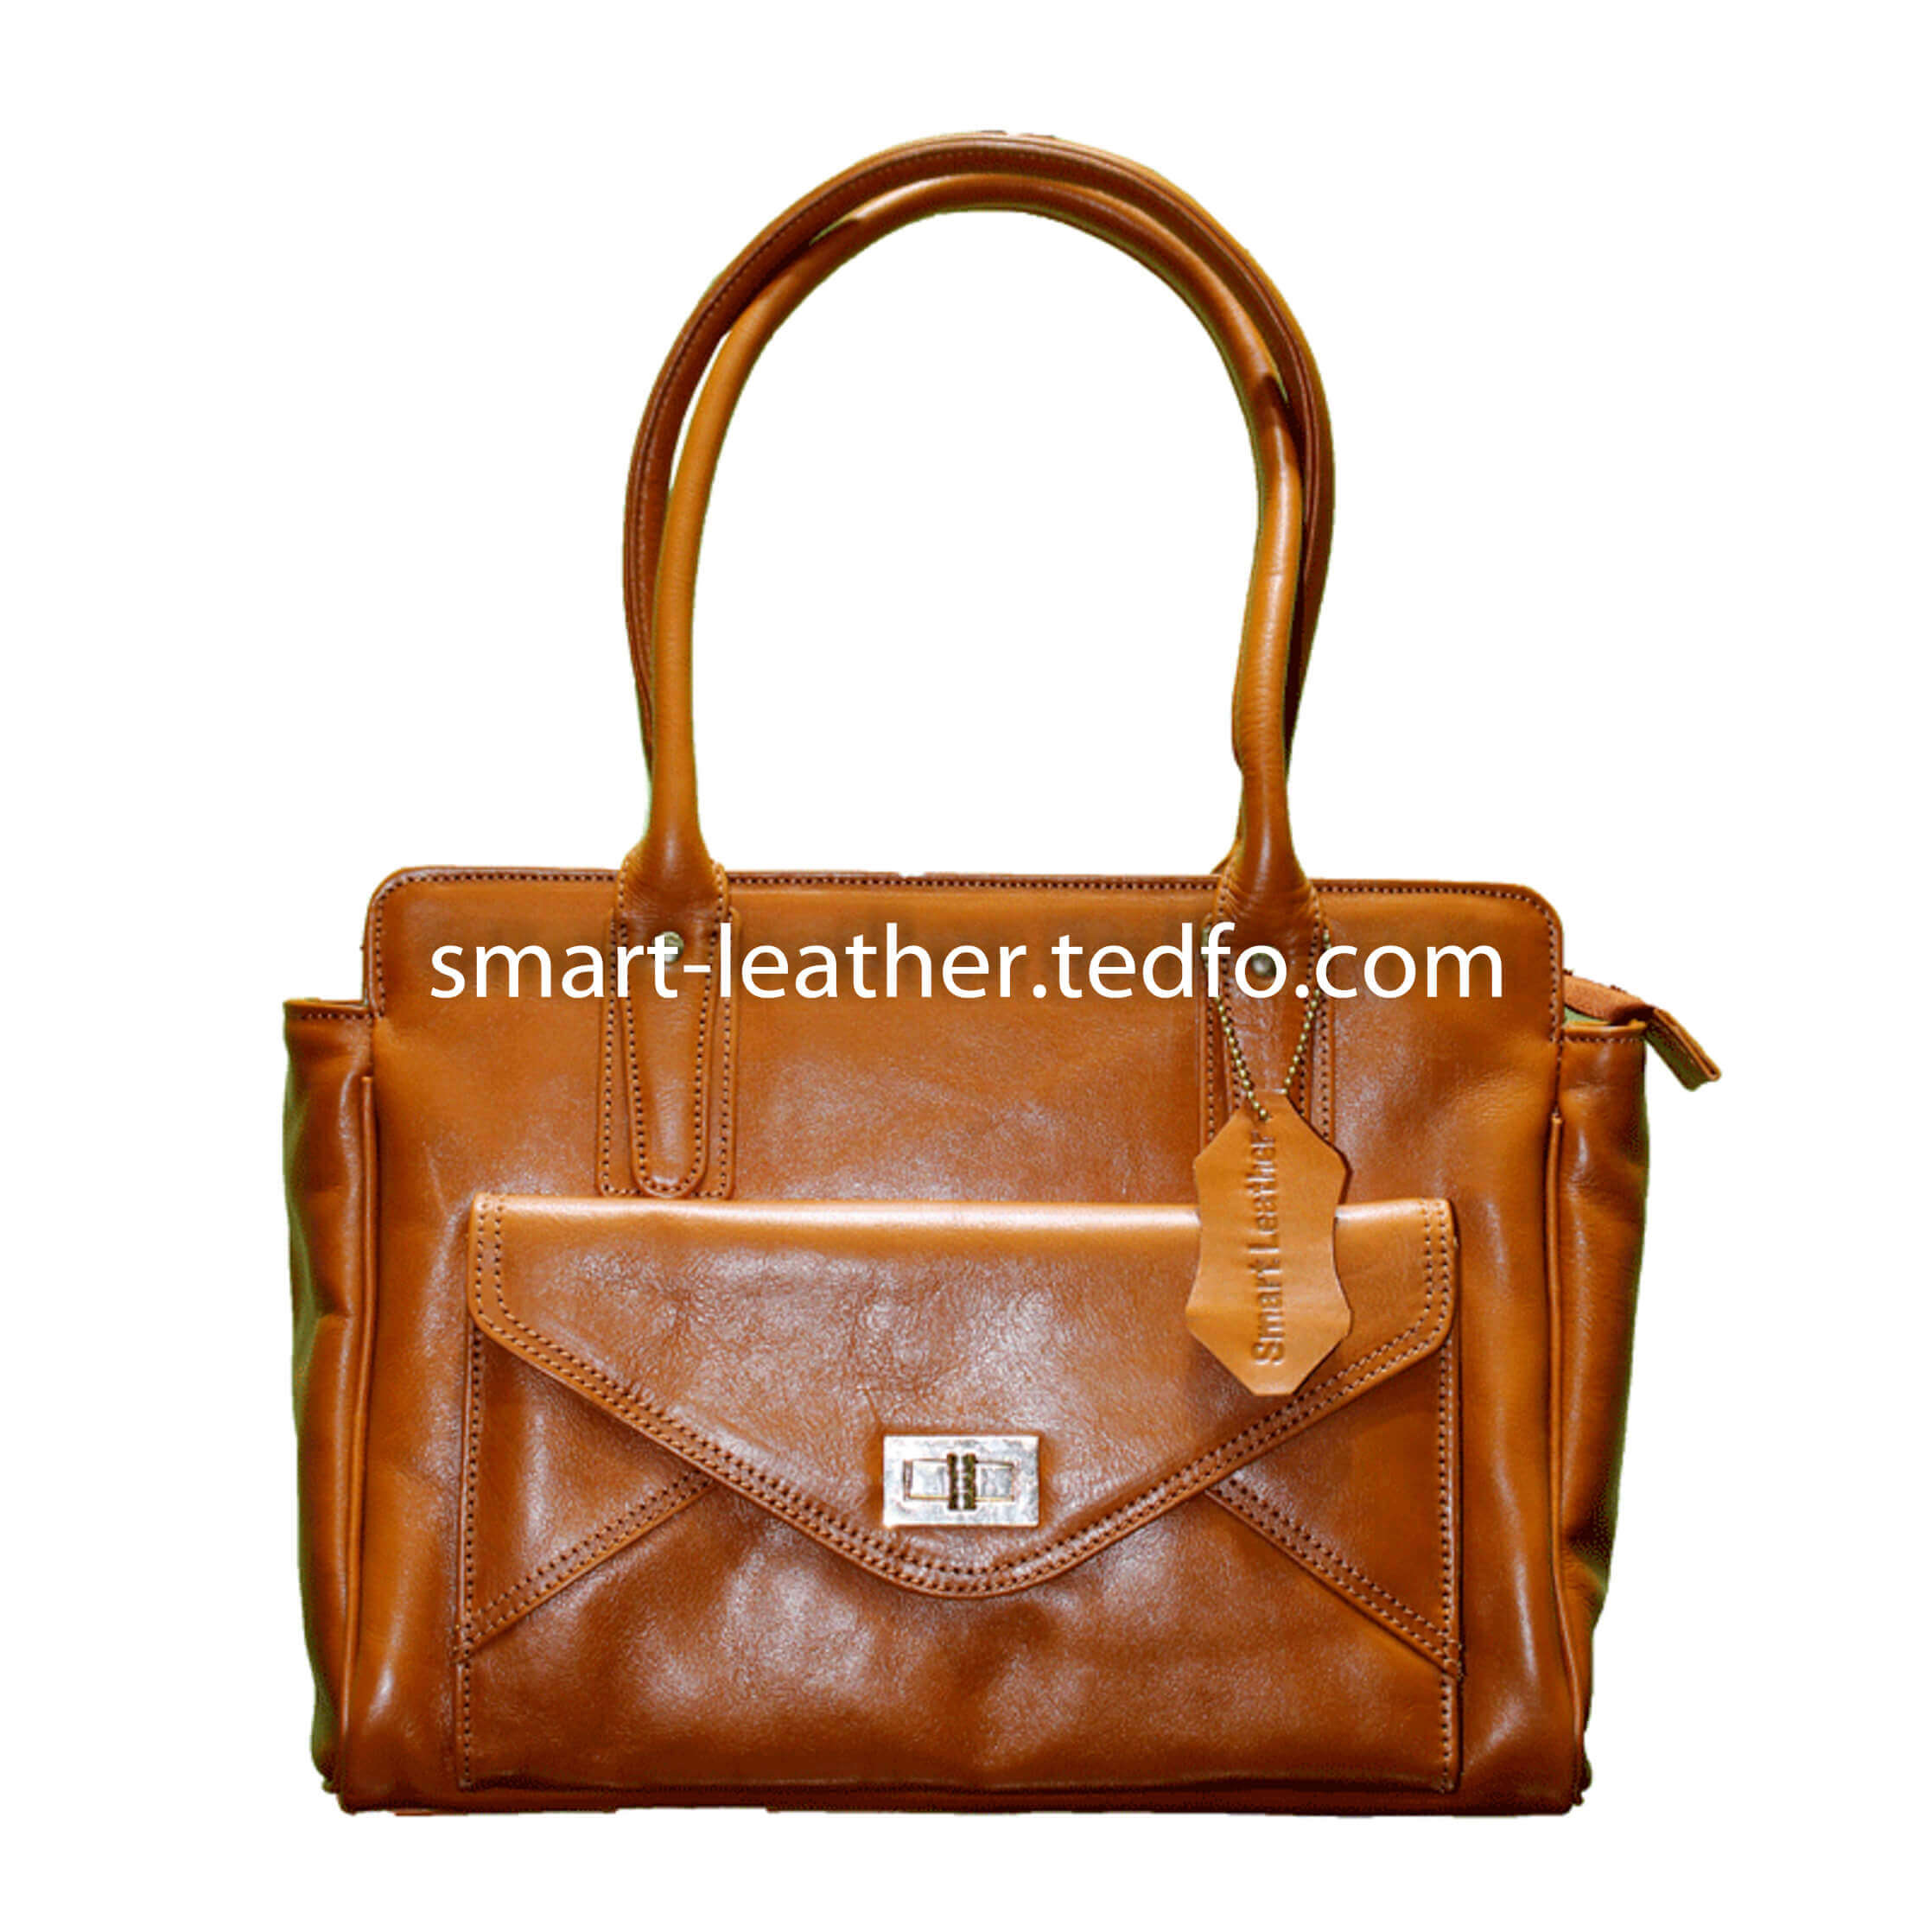 Attractive Lady Handbag Manufacturer and Exporter from Bangladesh